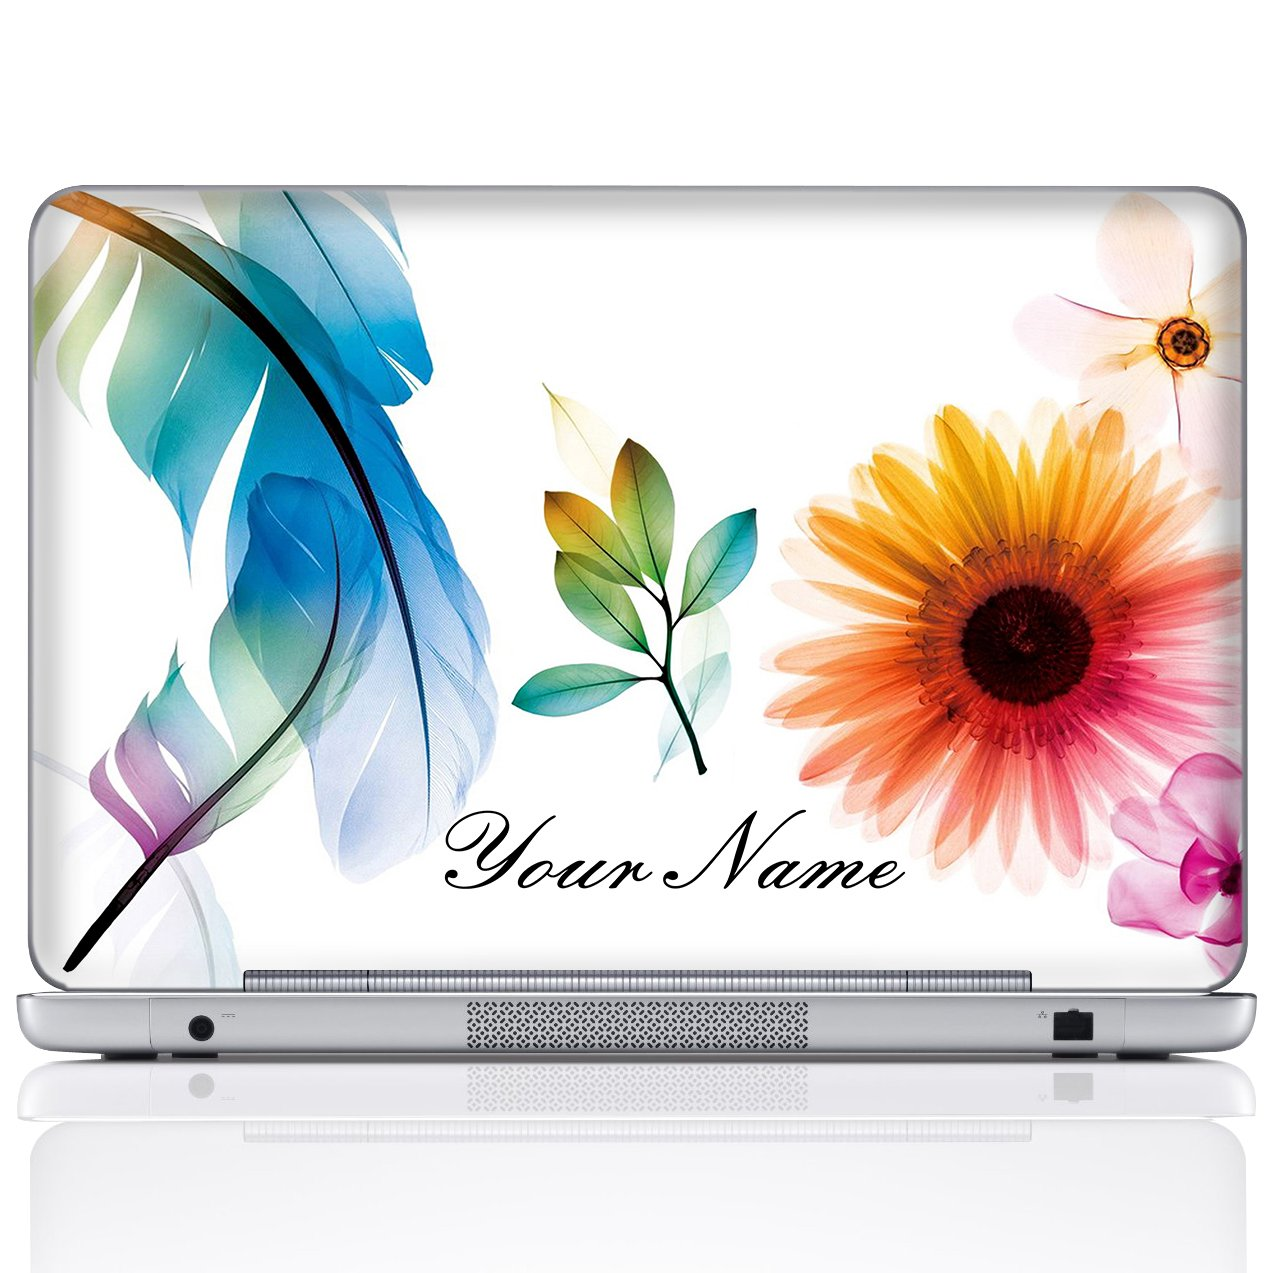 Meffort Inc Personalized Laptop Notebook Notebook Skin Sticker Cover Art Decal, Customize Your Name (17 Inch, White Flower Leaves)